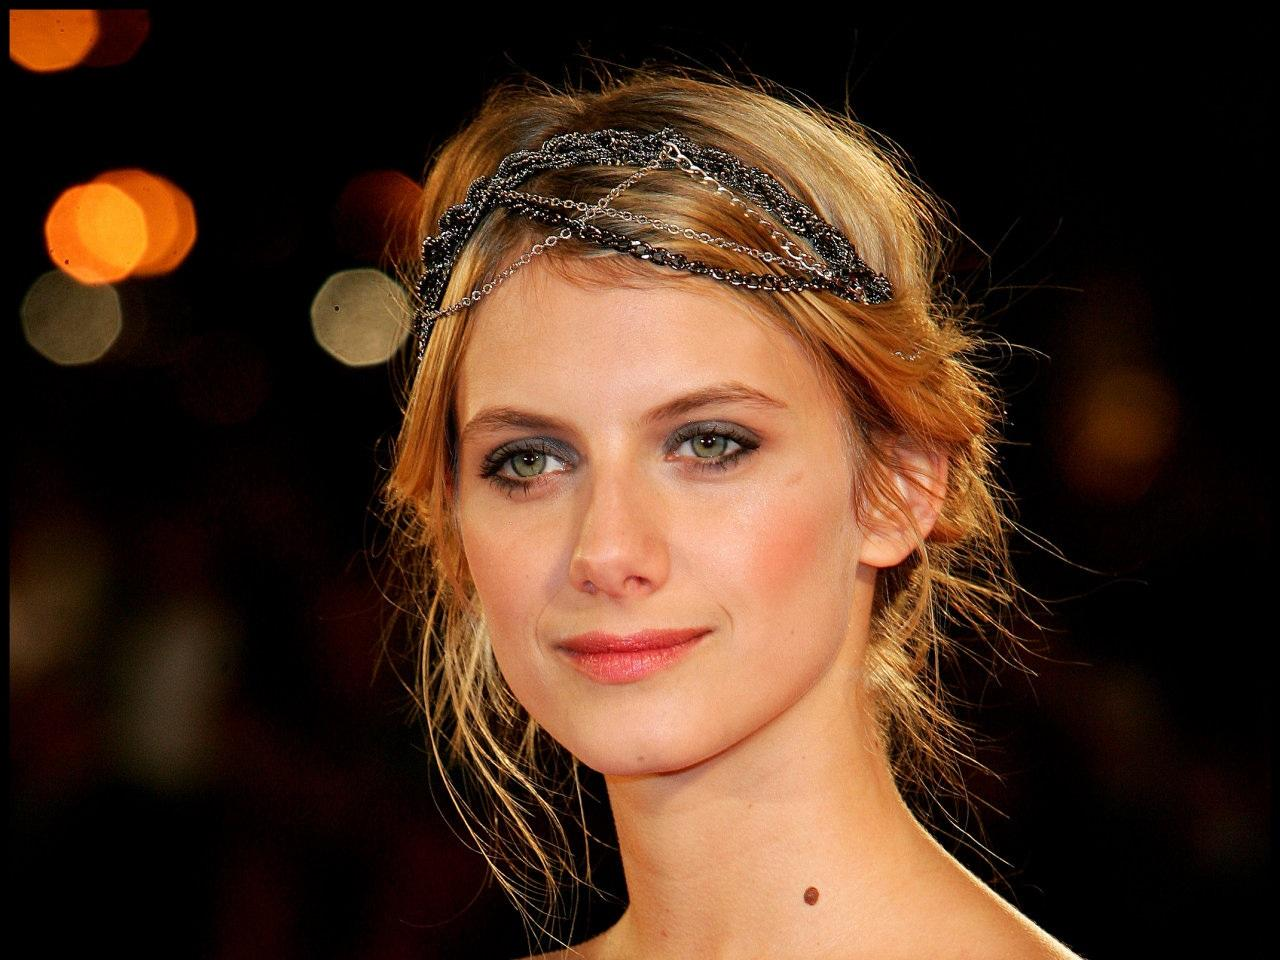 Photo Actrice Francaise Melanie Laurent